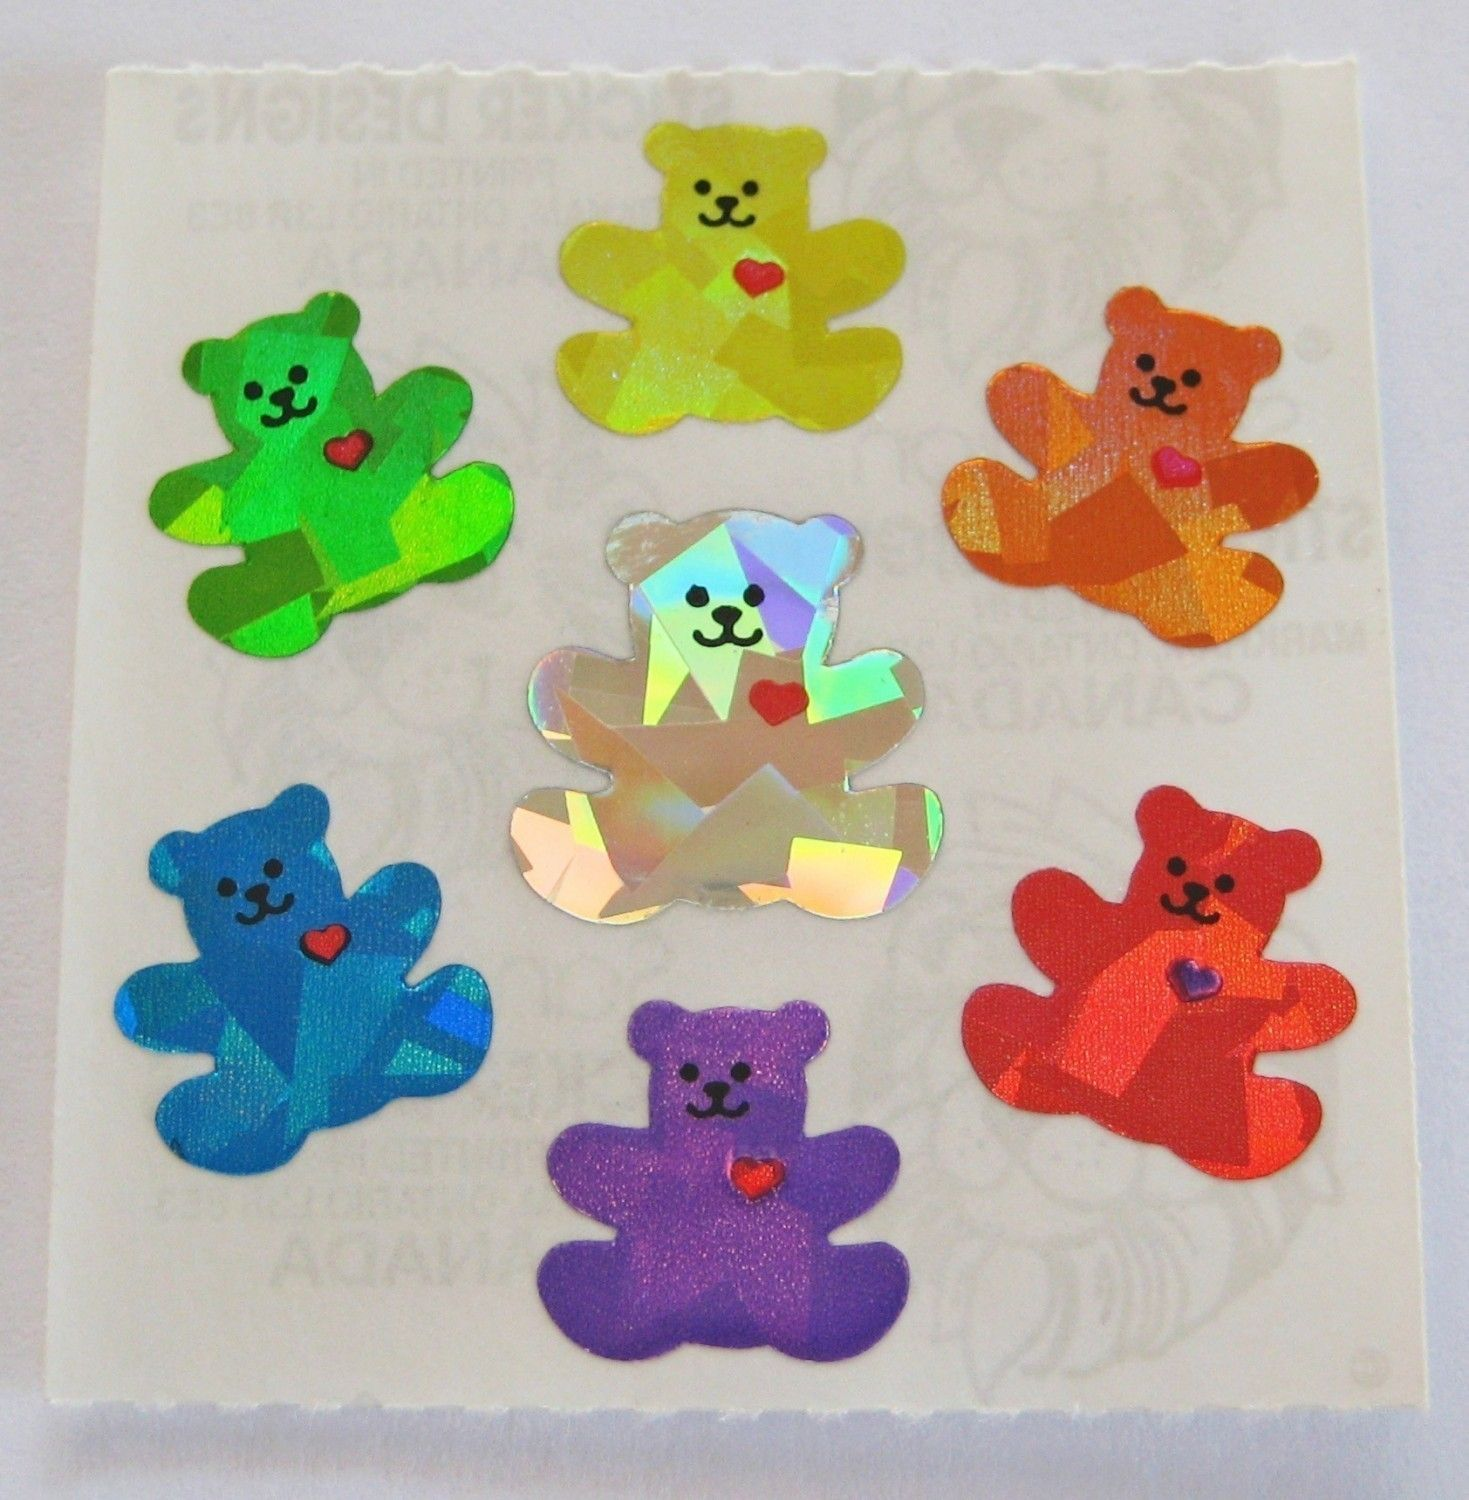 prism stickers....I had a sticker book and I would trade my stickers with other kids. Did you???